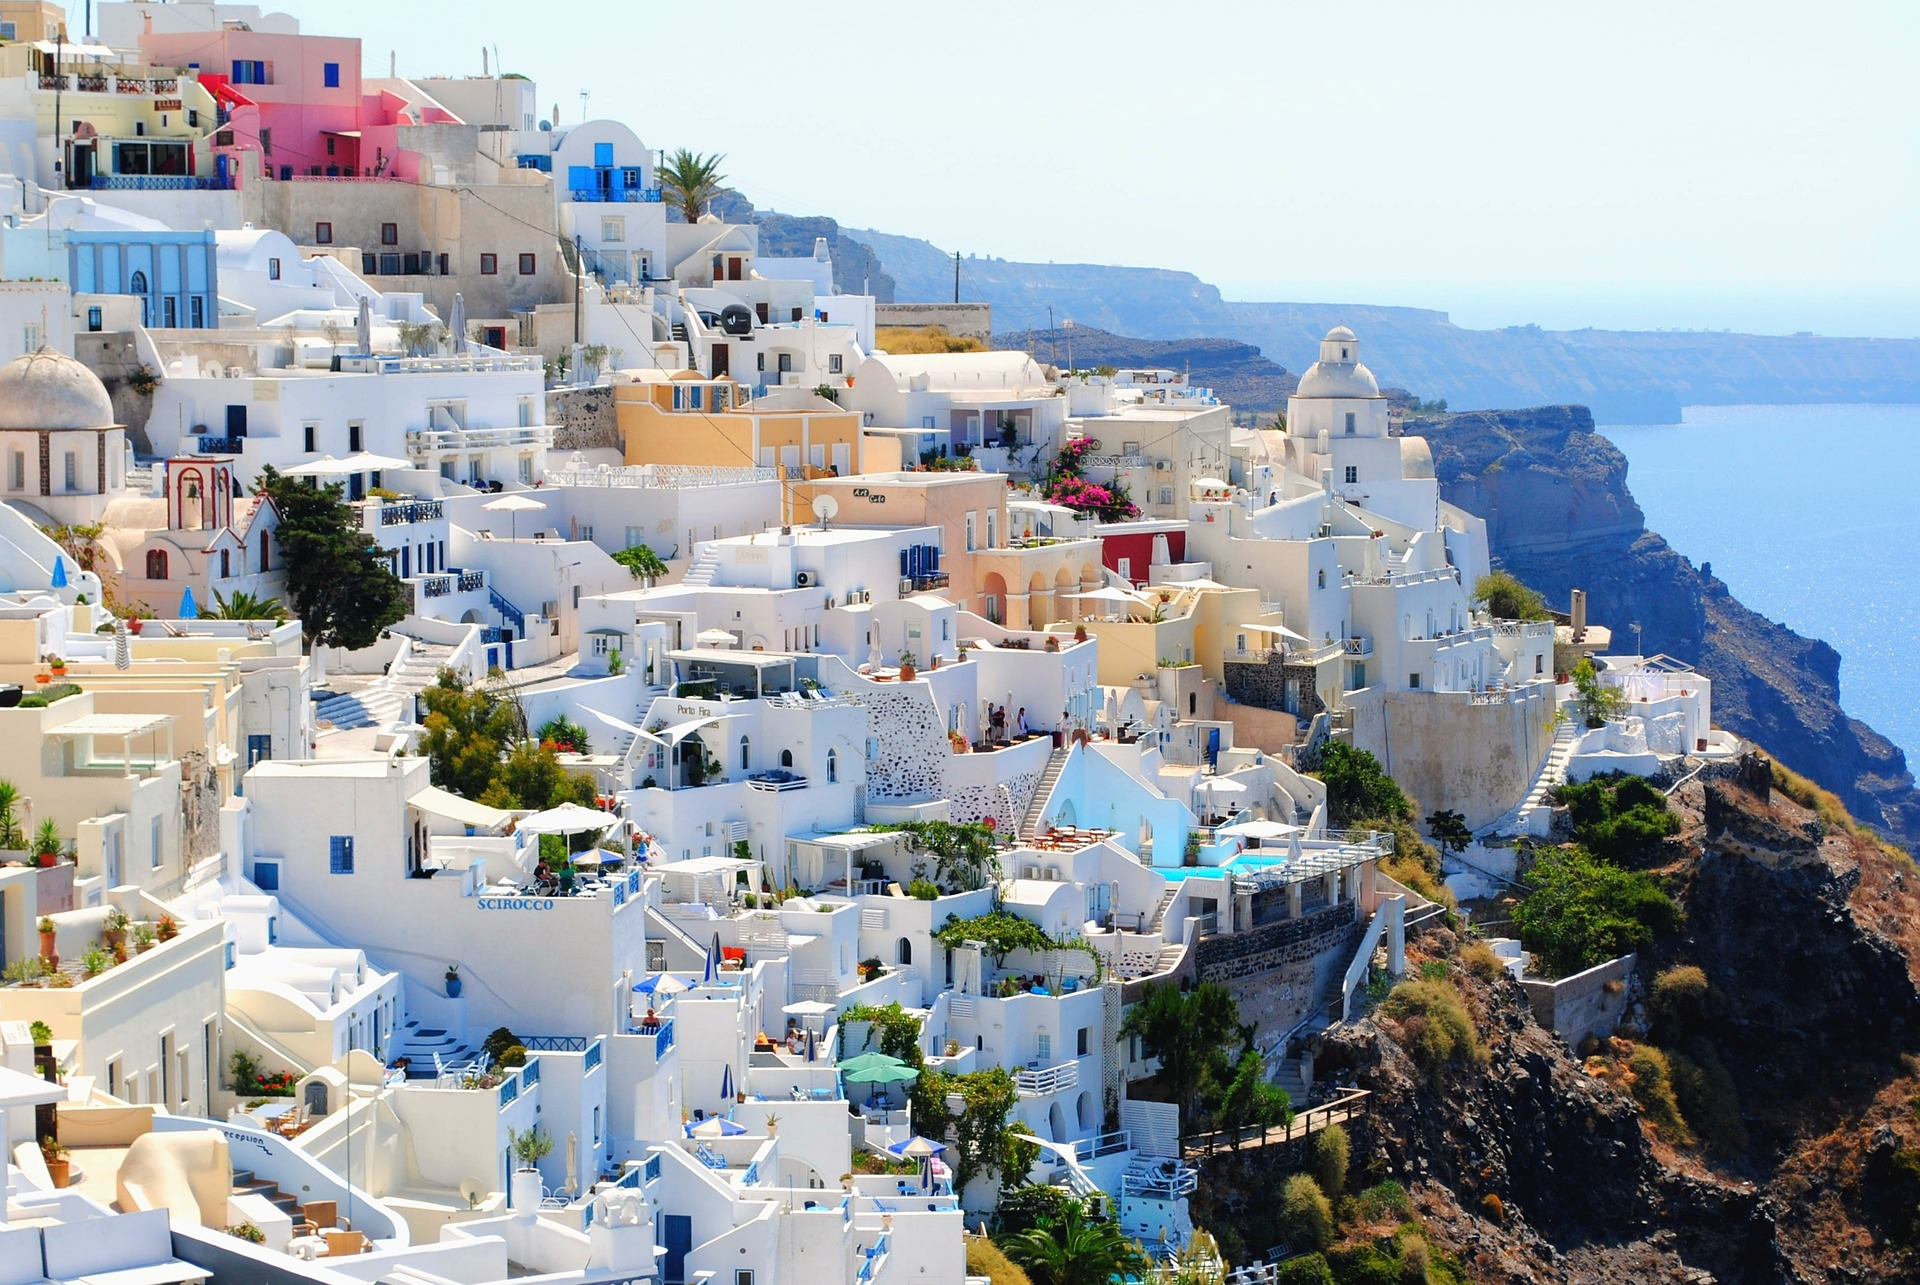 white washed buildings of Santorini on the cliffside with ocean below